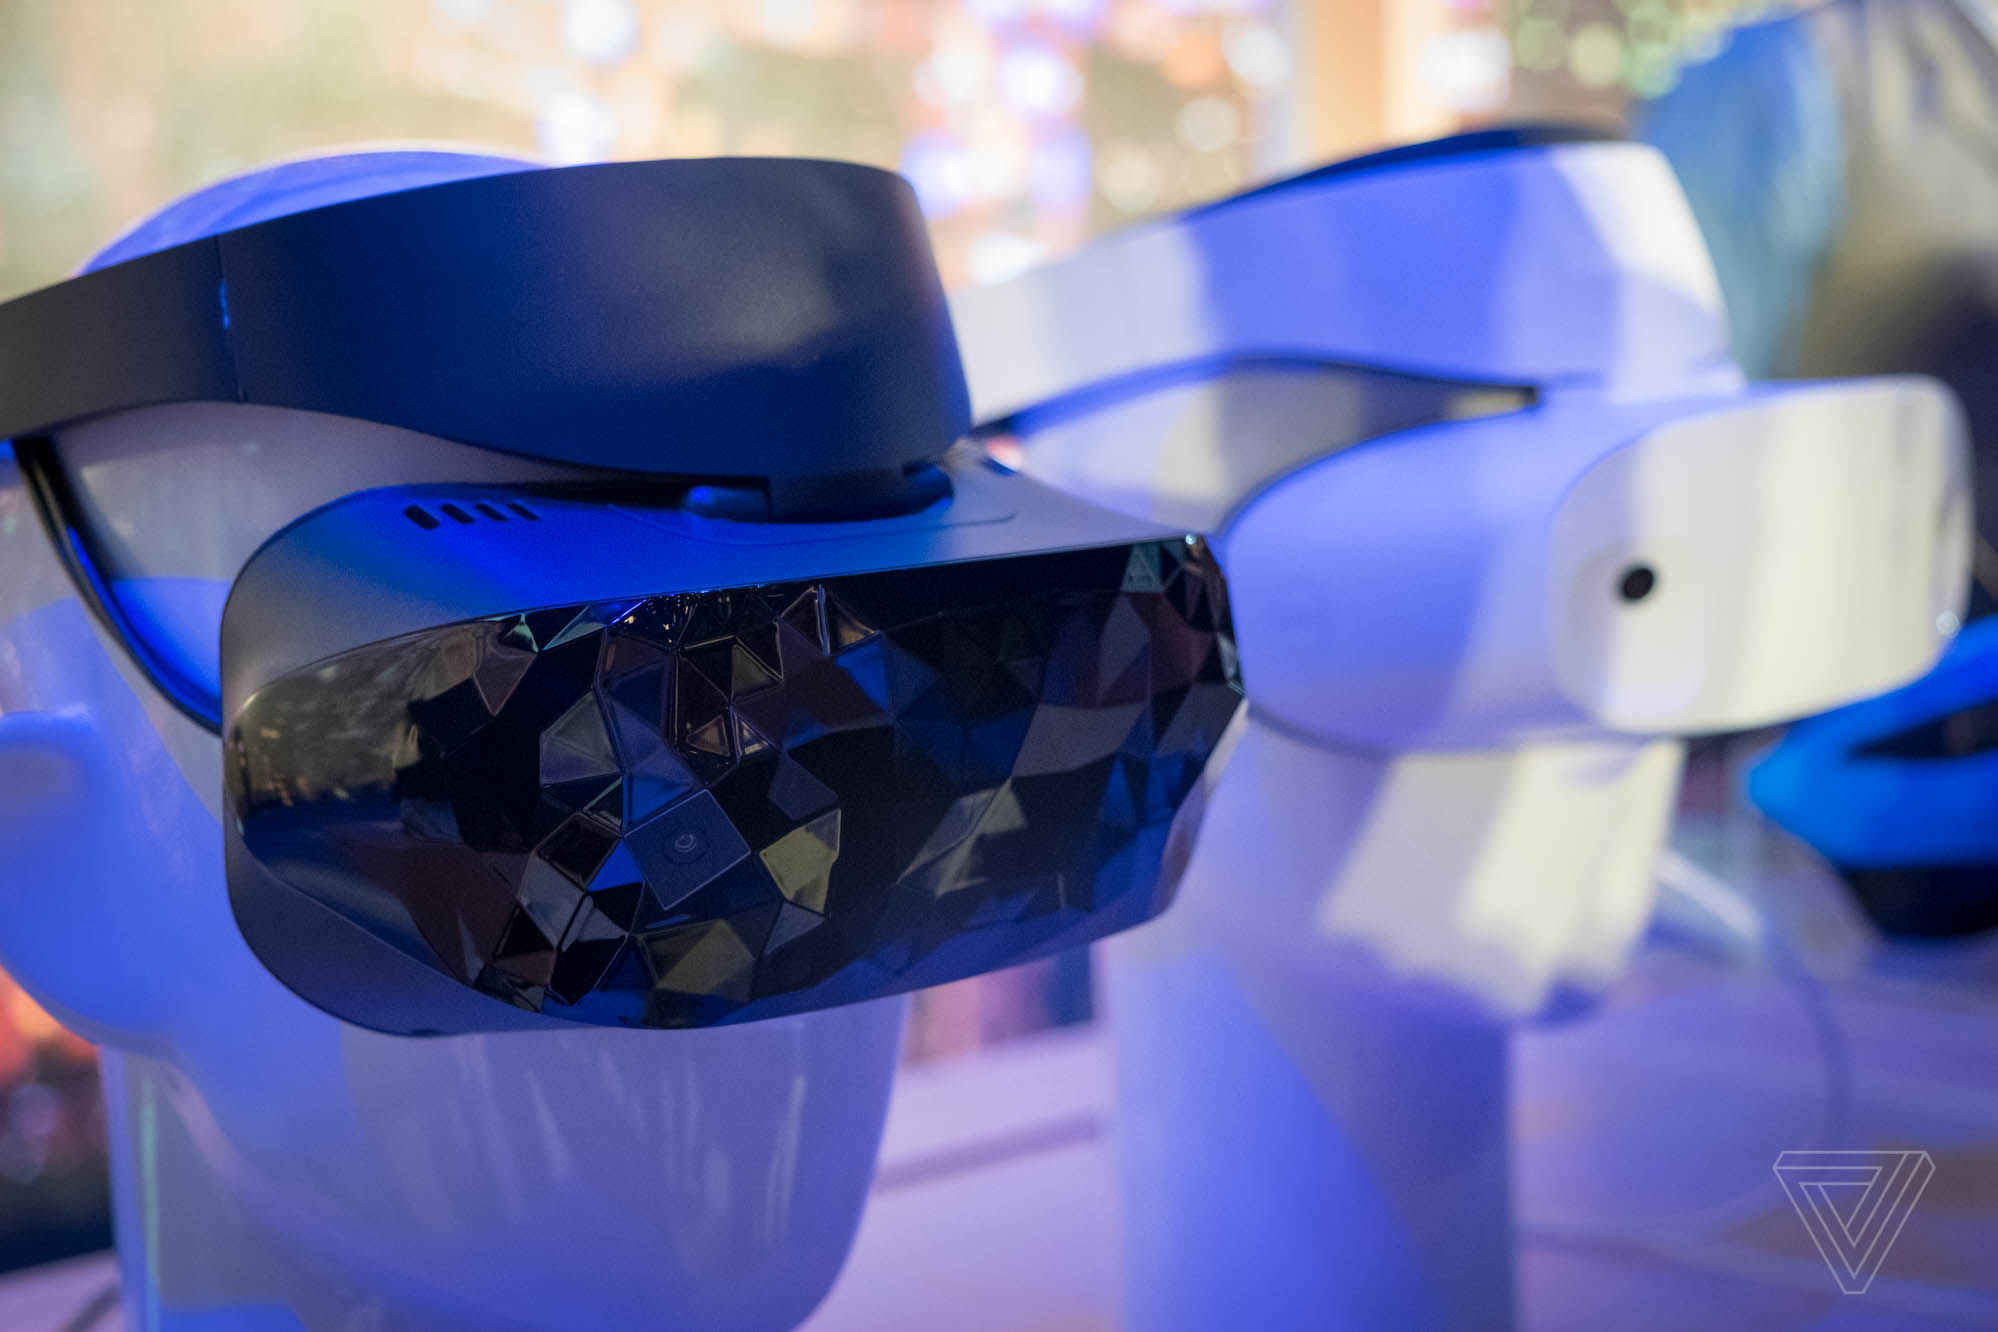 Dell and Asus reveal their new Windows Mixed Reality headsets